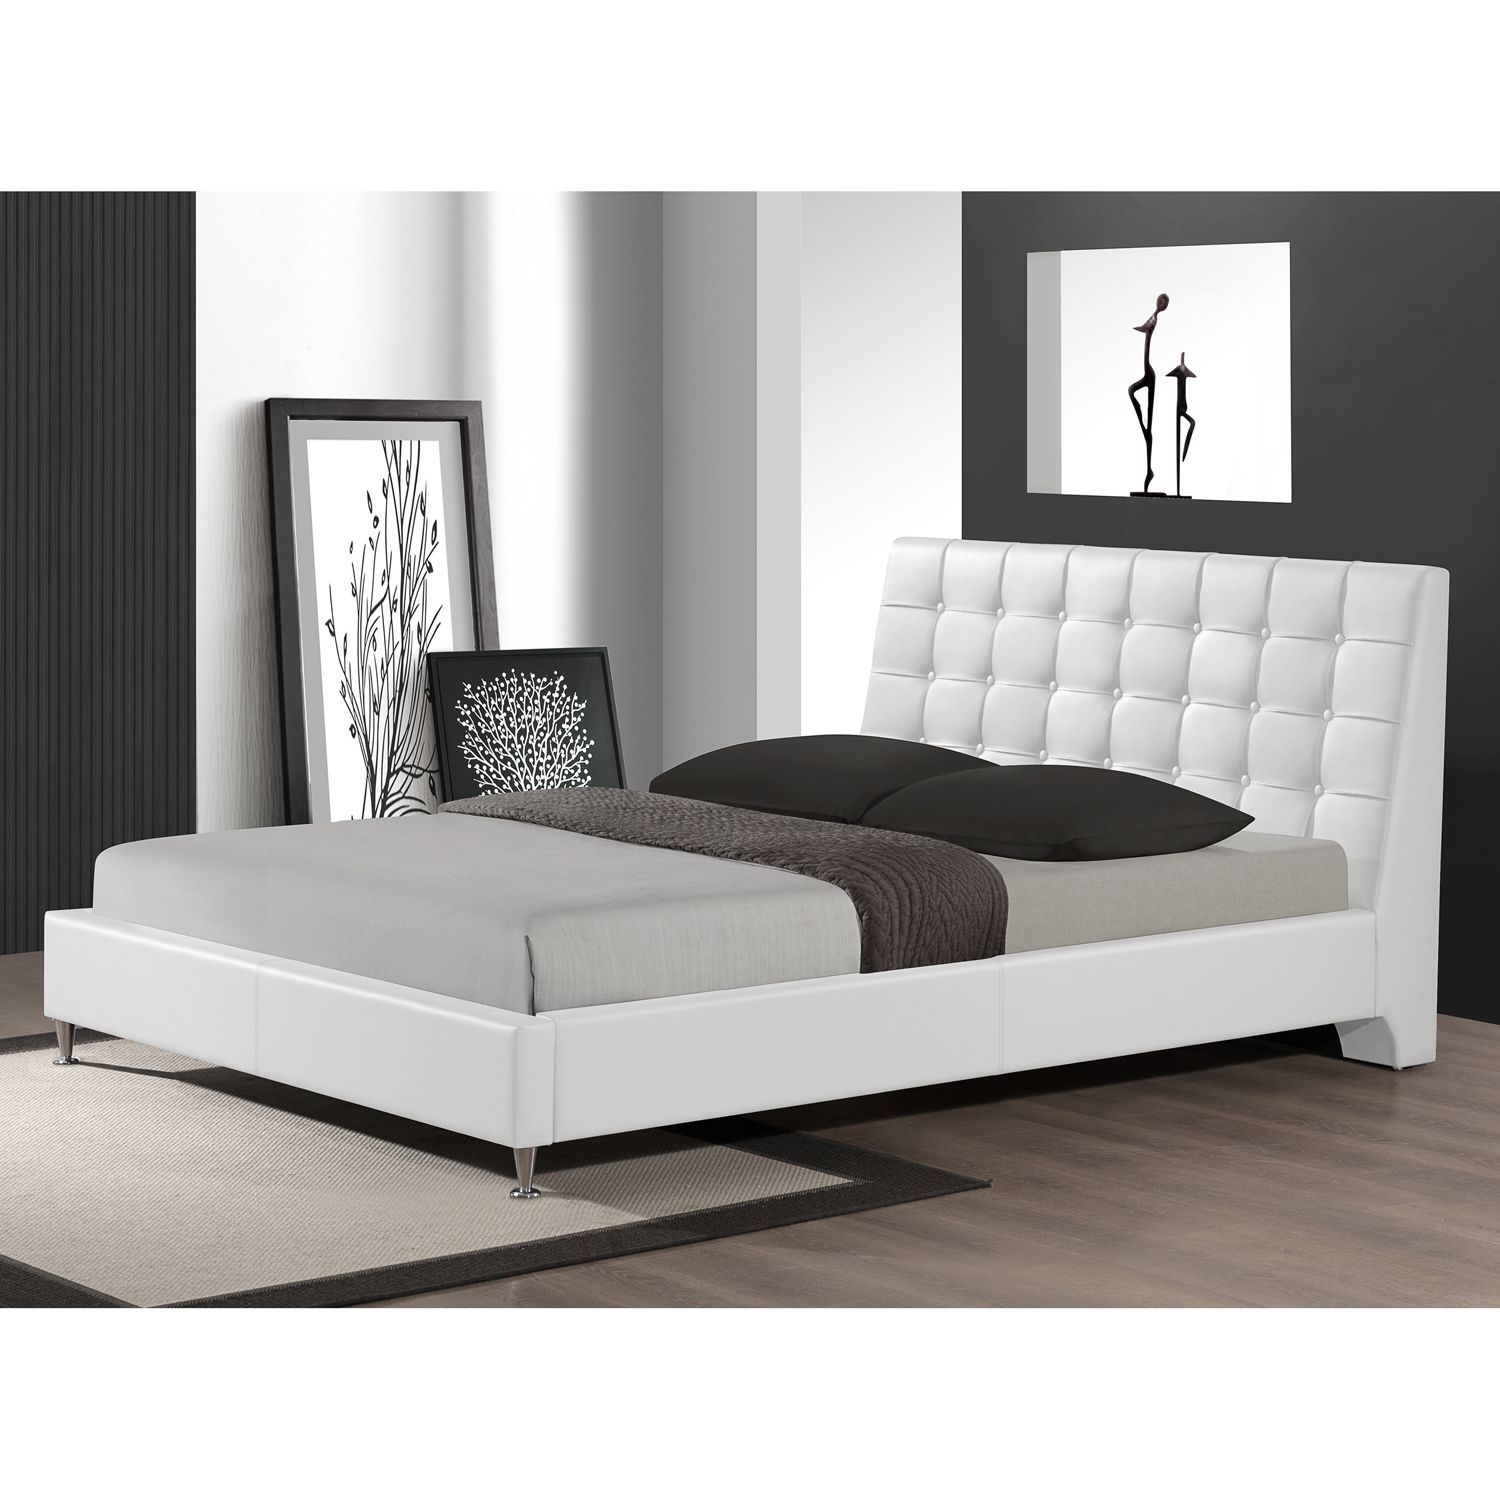 Baxton Studio Zeller White Modern Bed with Upholstered Headboard ...